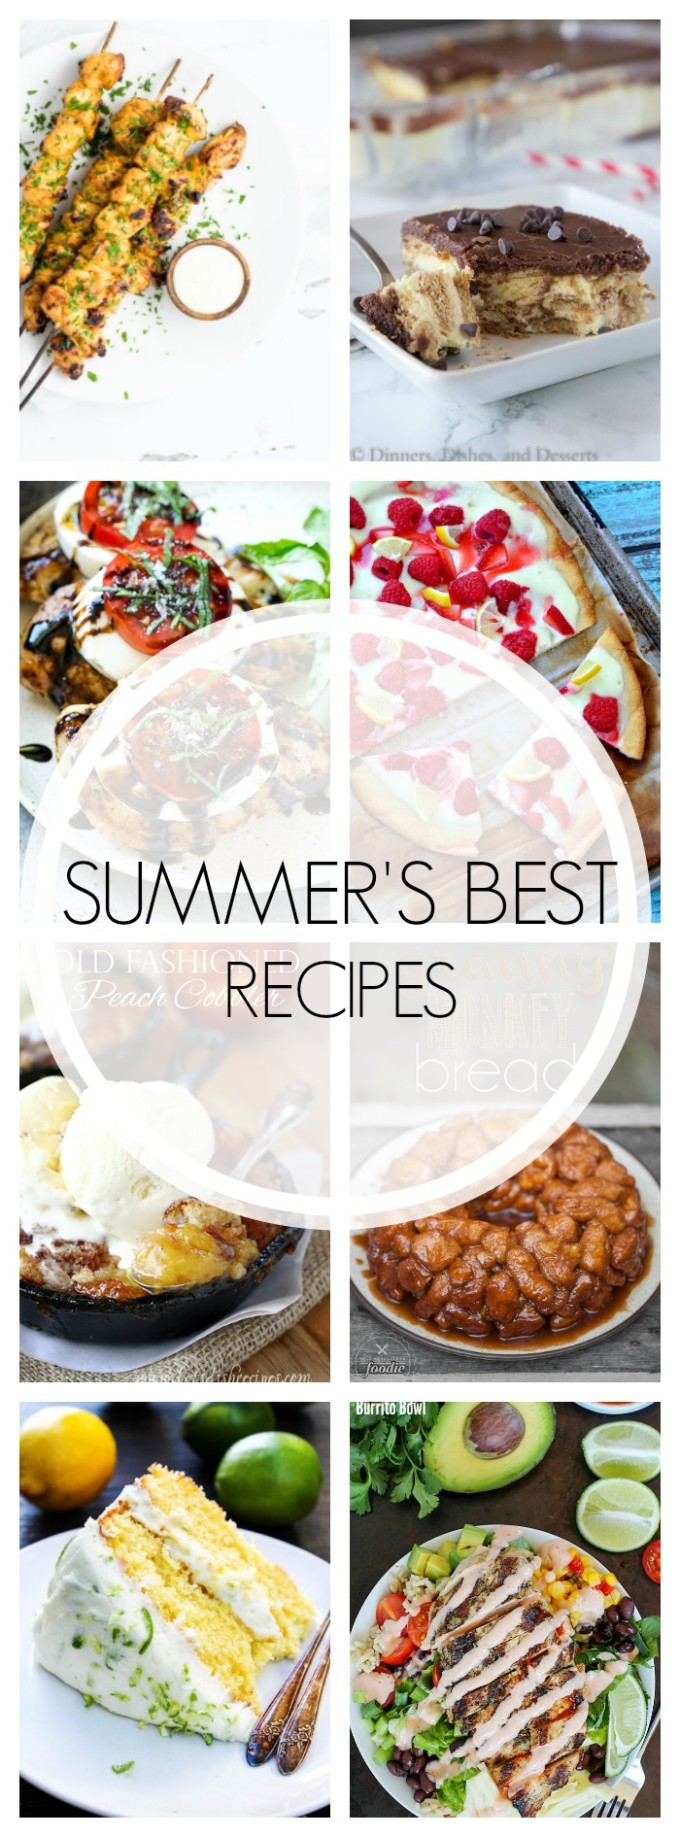 23 of Summer's BEST Recipes - everything from dinner to dessert!